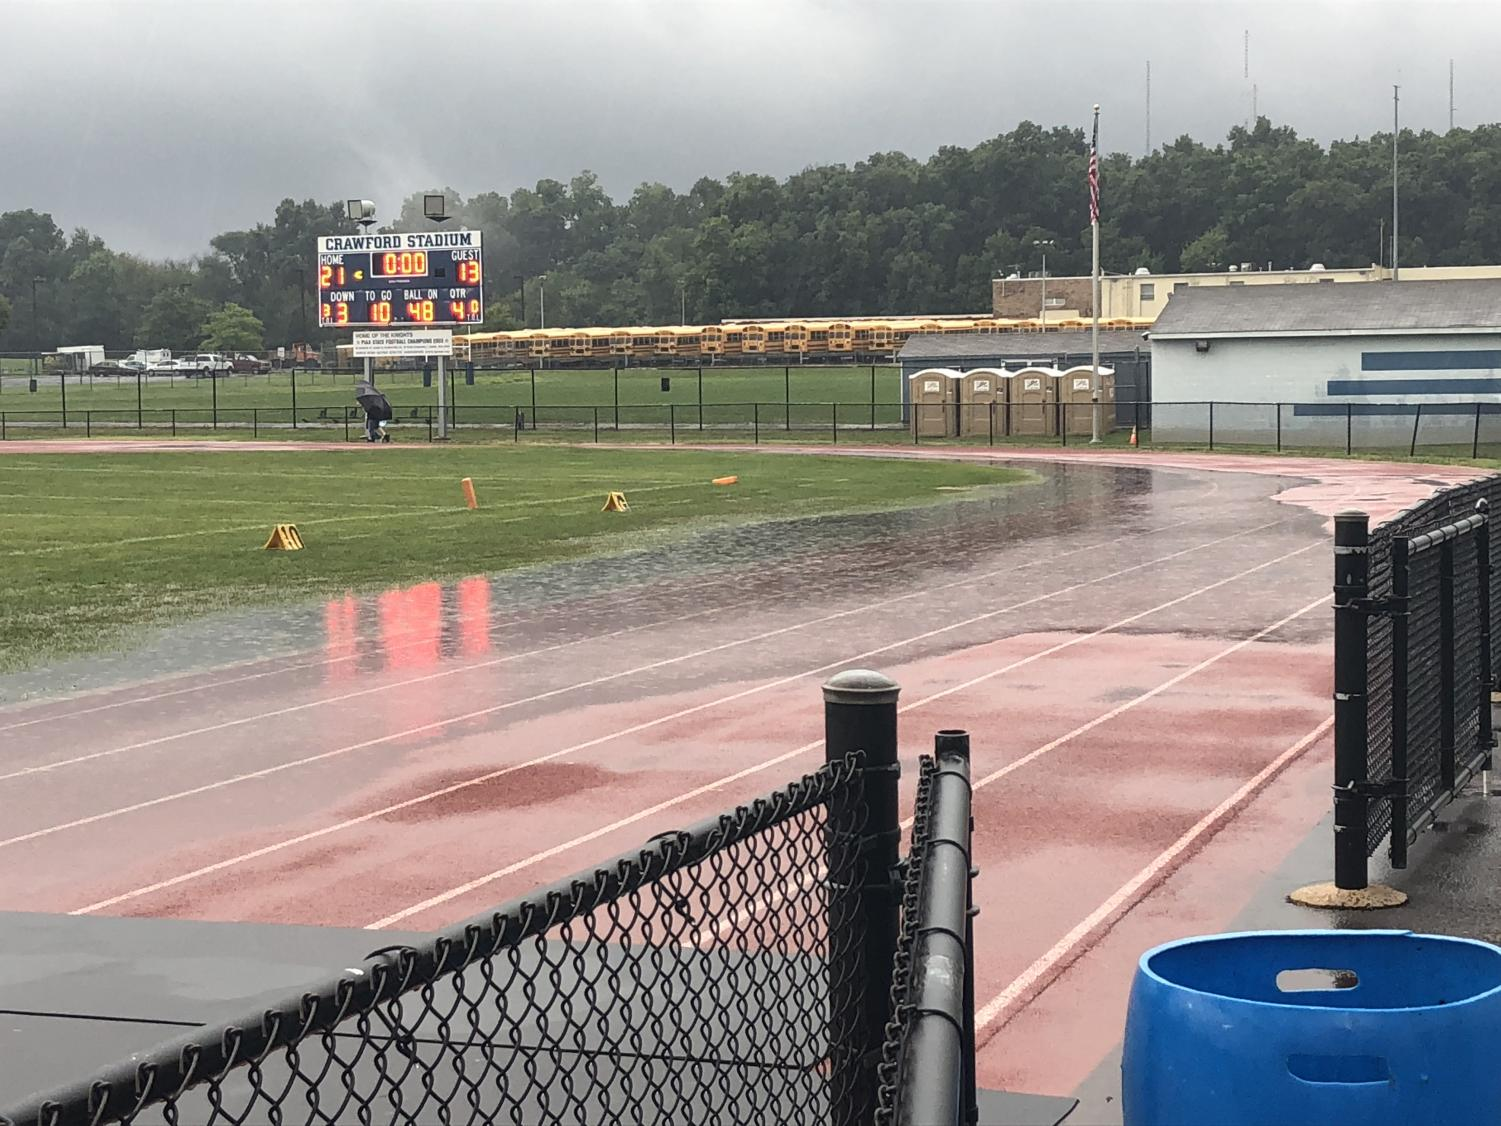 North Penn High School's Crawford Stadium on a Friday night in September, 2018. The football game scheduled for that night was moved to the NPHS turf field the next day, due to unplayable conditions in Crawford Stadium. In the background is a familiar row or portable toilets brought in for weekly football games. The stadium is currently under review for potential renovations.